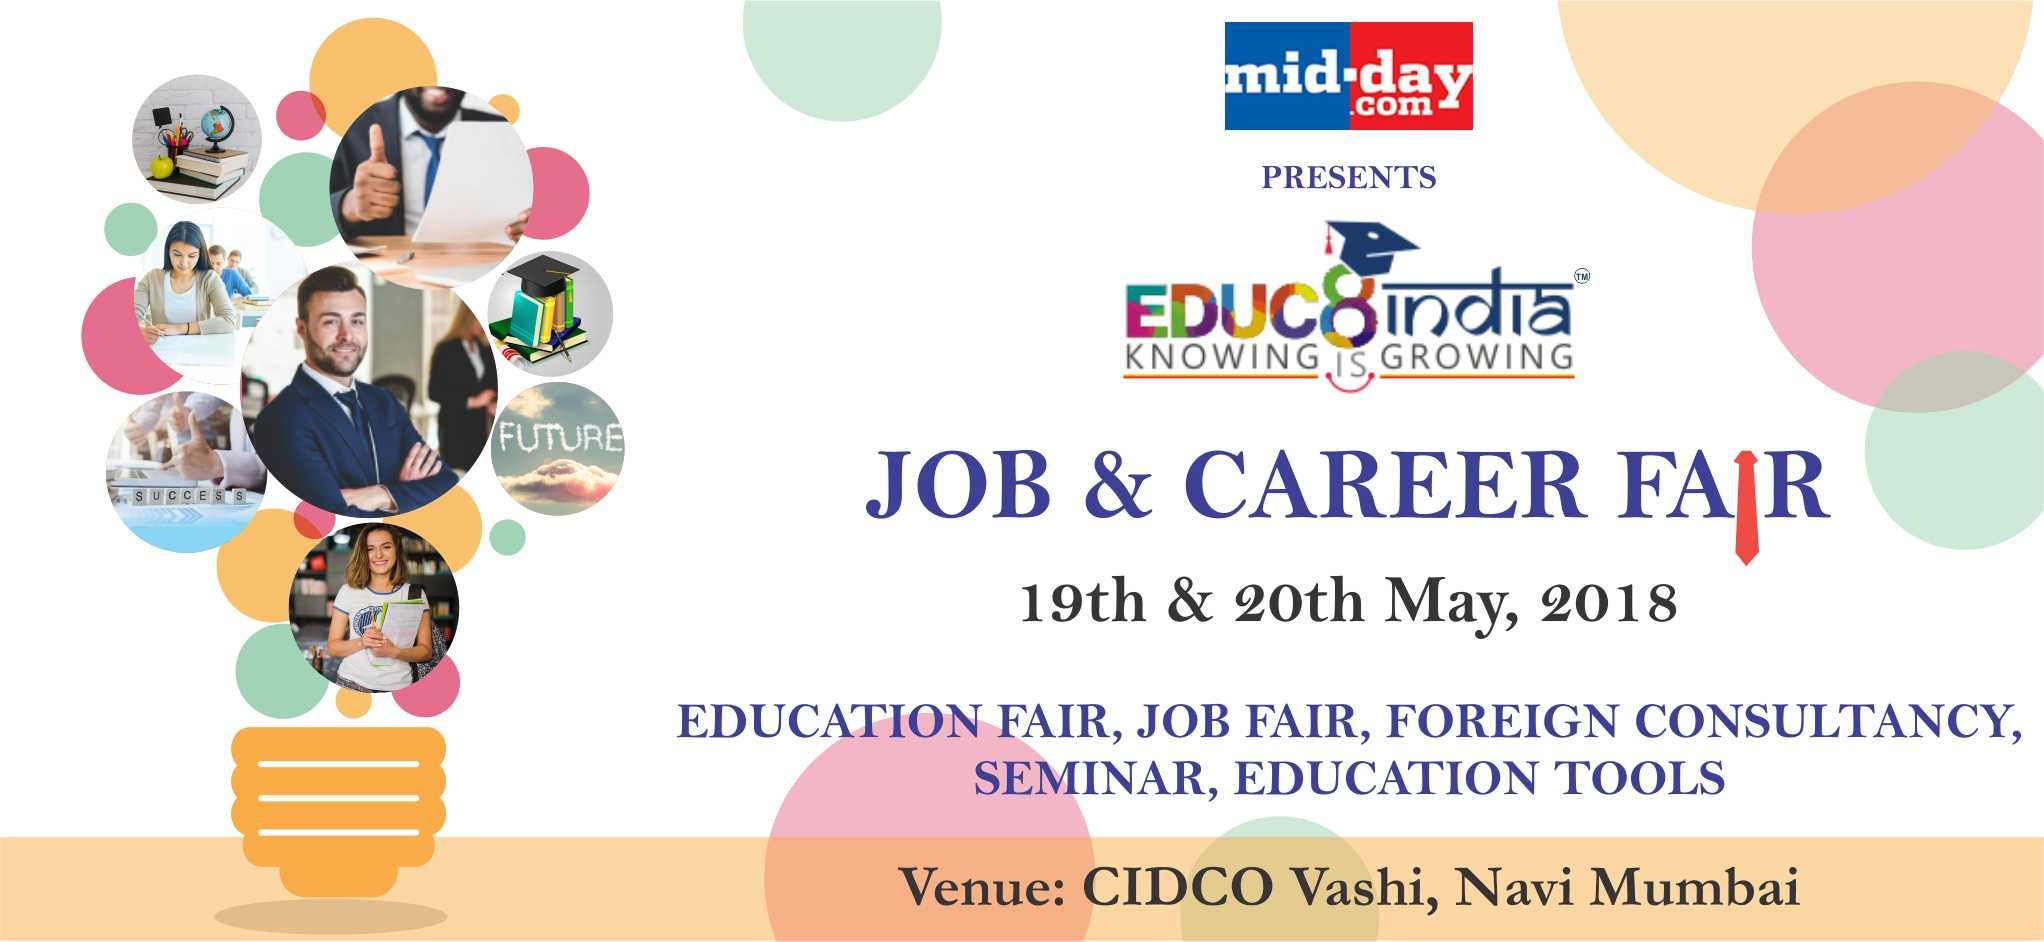 Job Fair & Career Expo at Mumbai on 19th & 20th of May 2018 Educ8 India